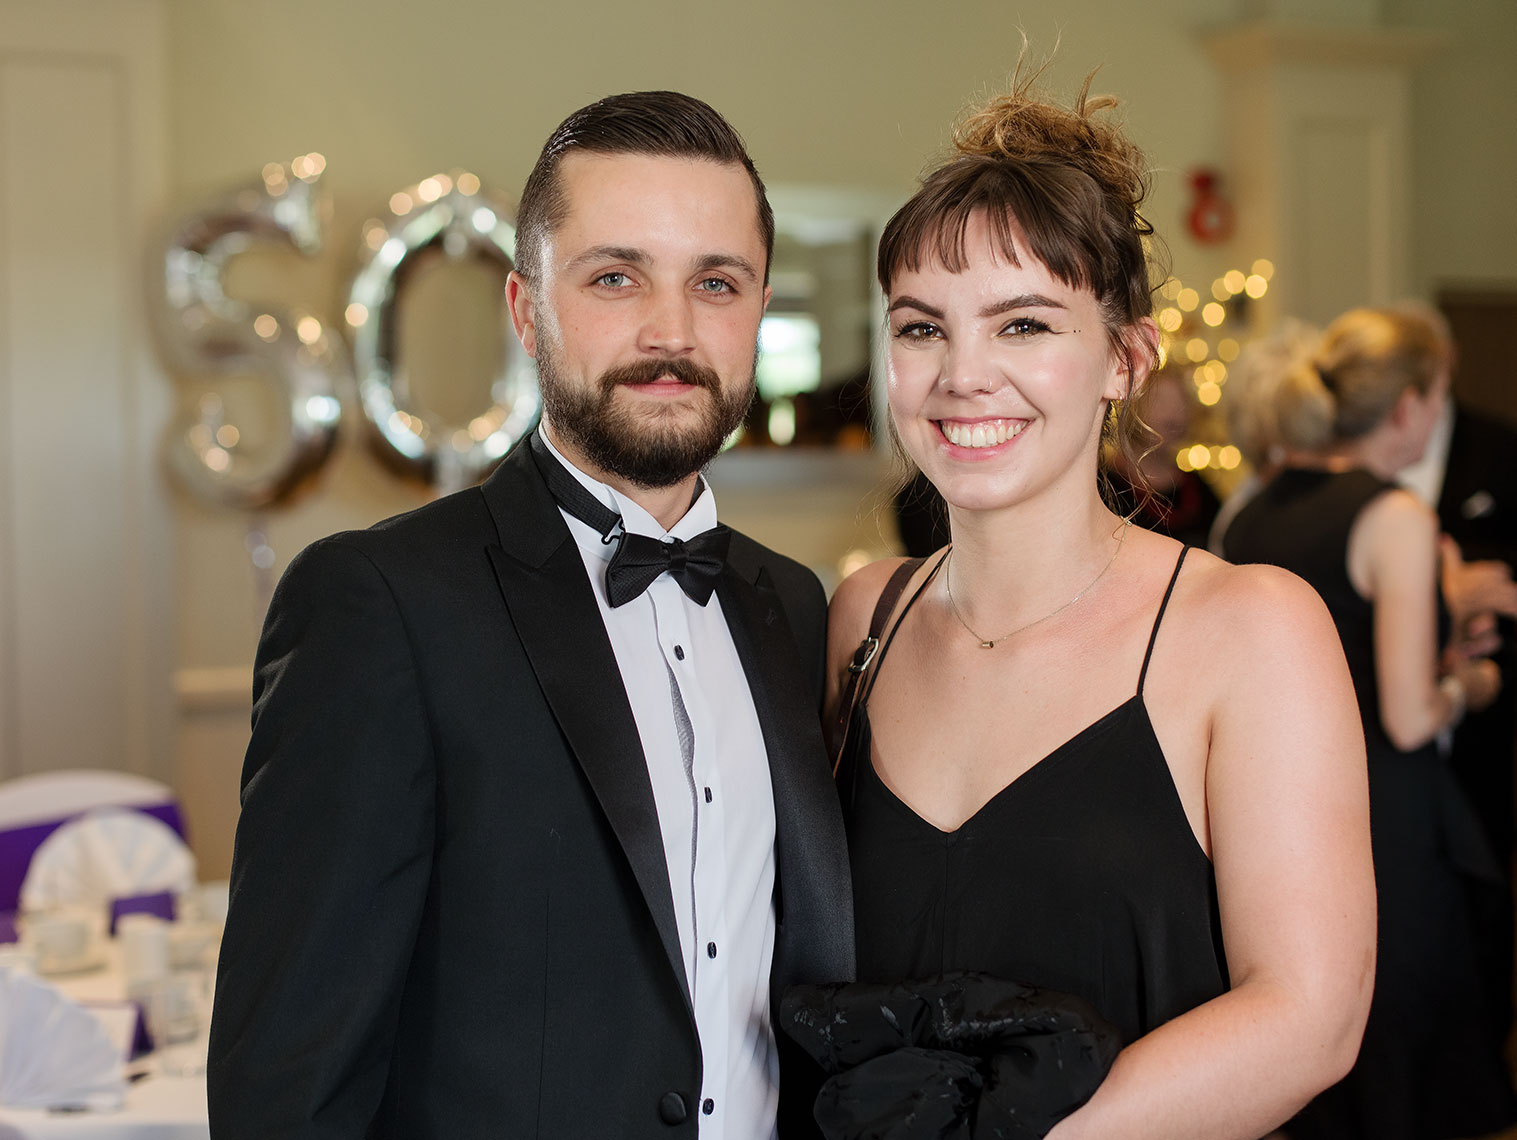 Man with beard and dark suit posing with smiling young lady in formal dress